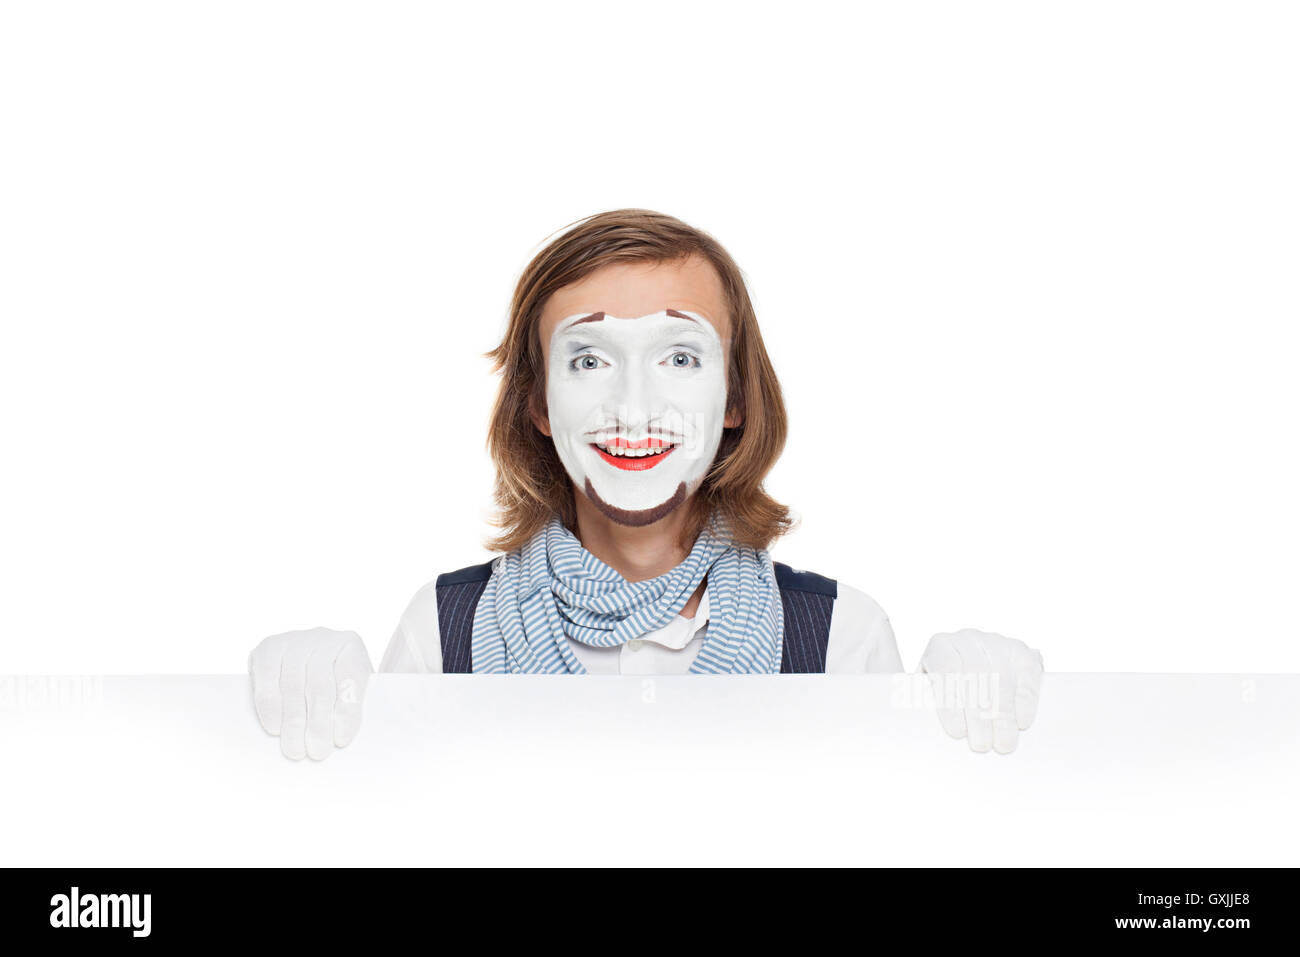 mime smiling with white billboard - Stock Image